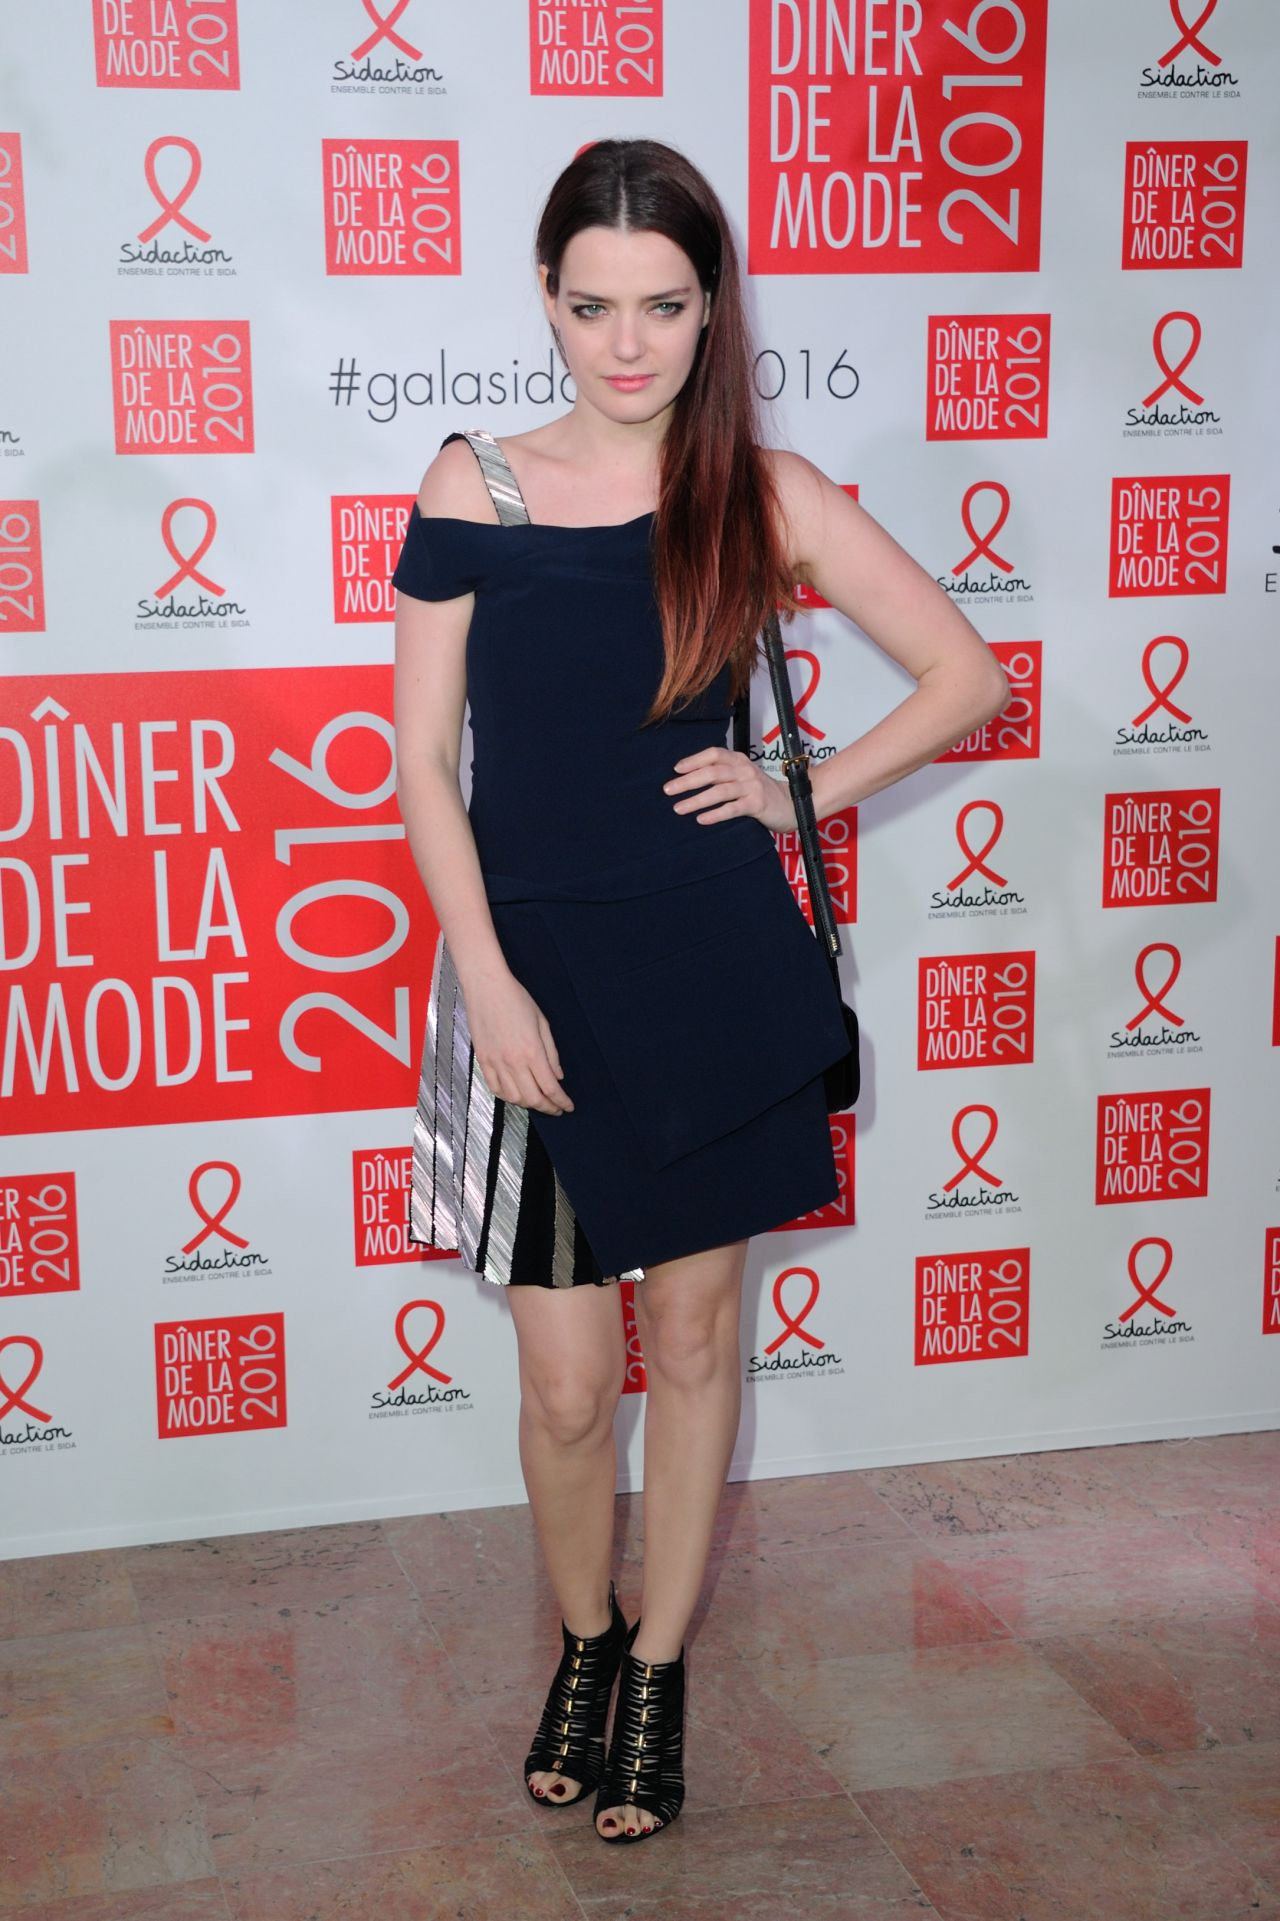 roxanne-mesquida-sidaction-gala-dinner-2016-in-paris-1-28-2016-1